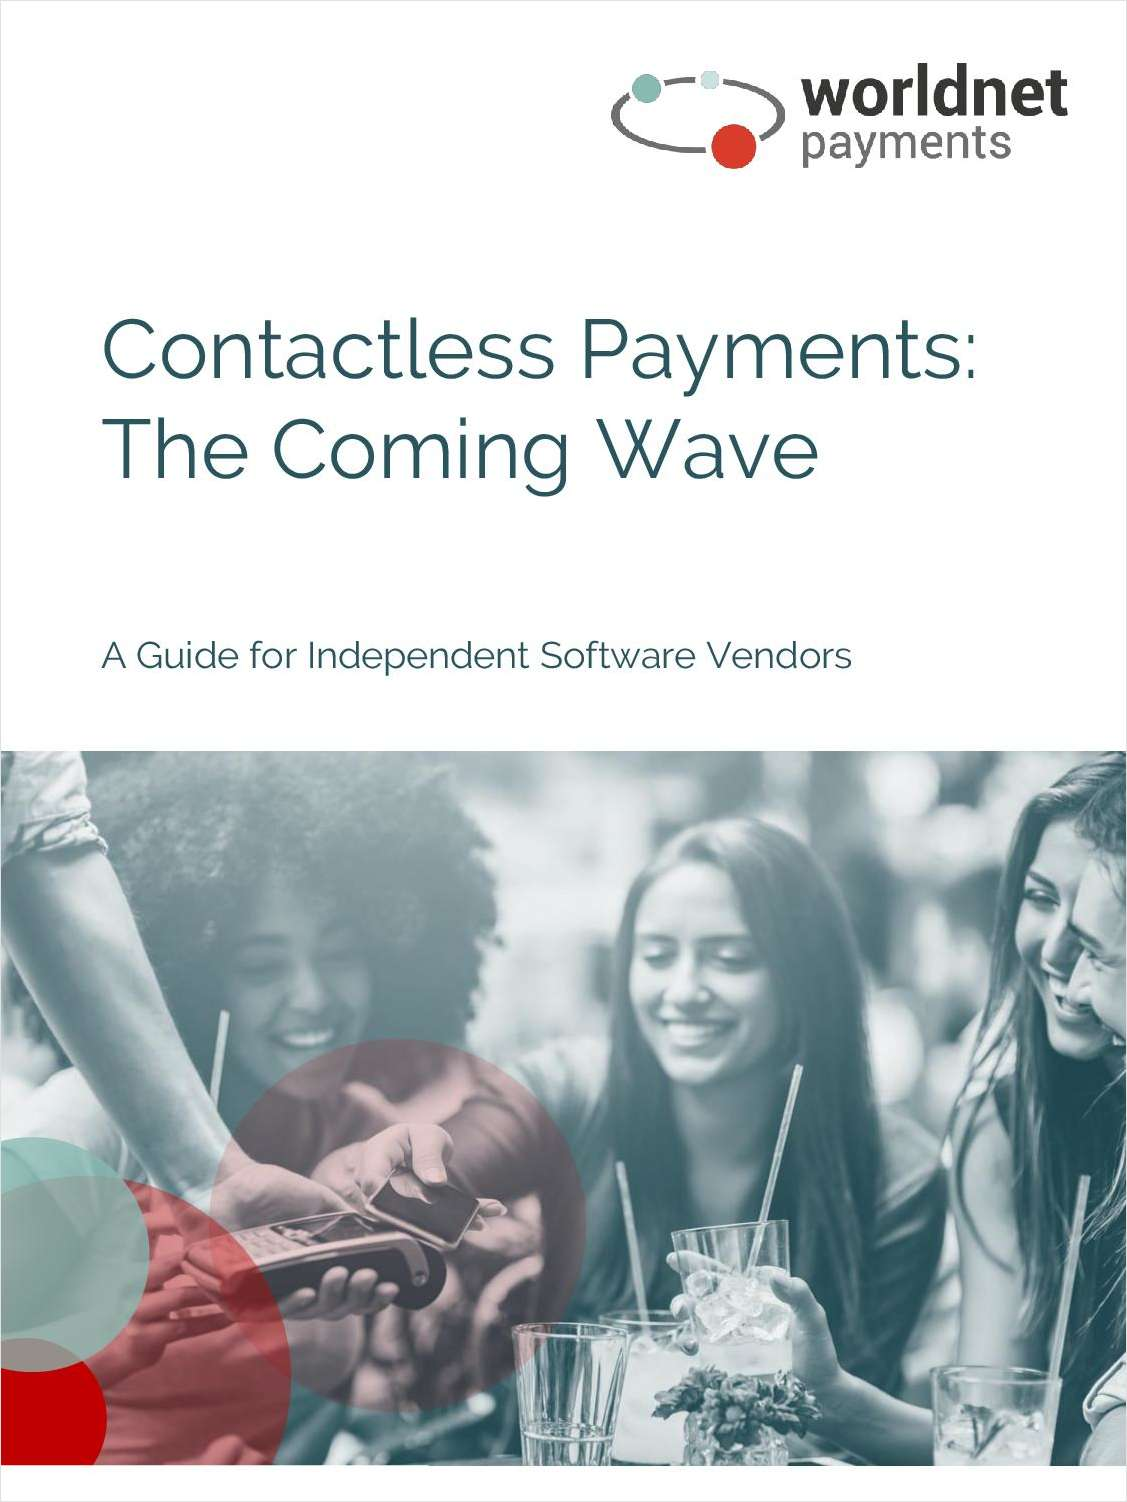 Contactless Payments: What Software Vendors Need to Know